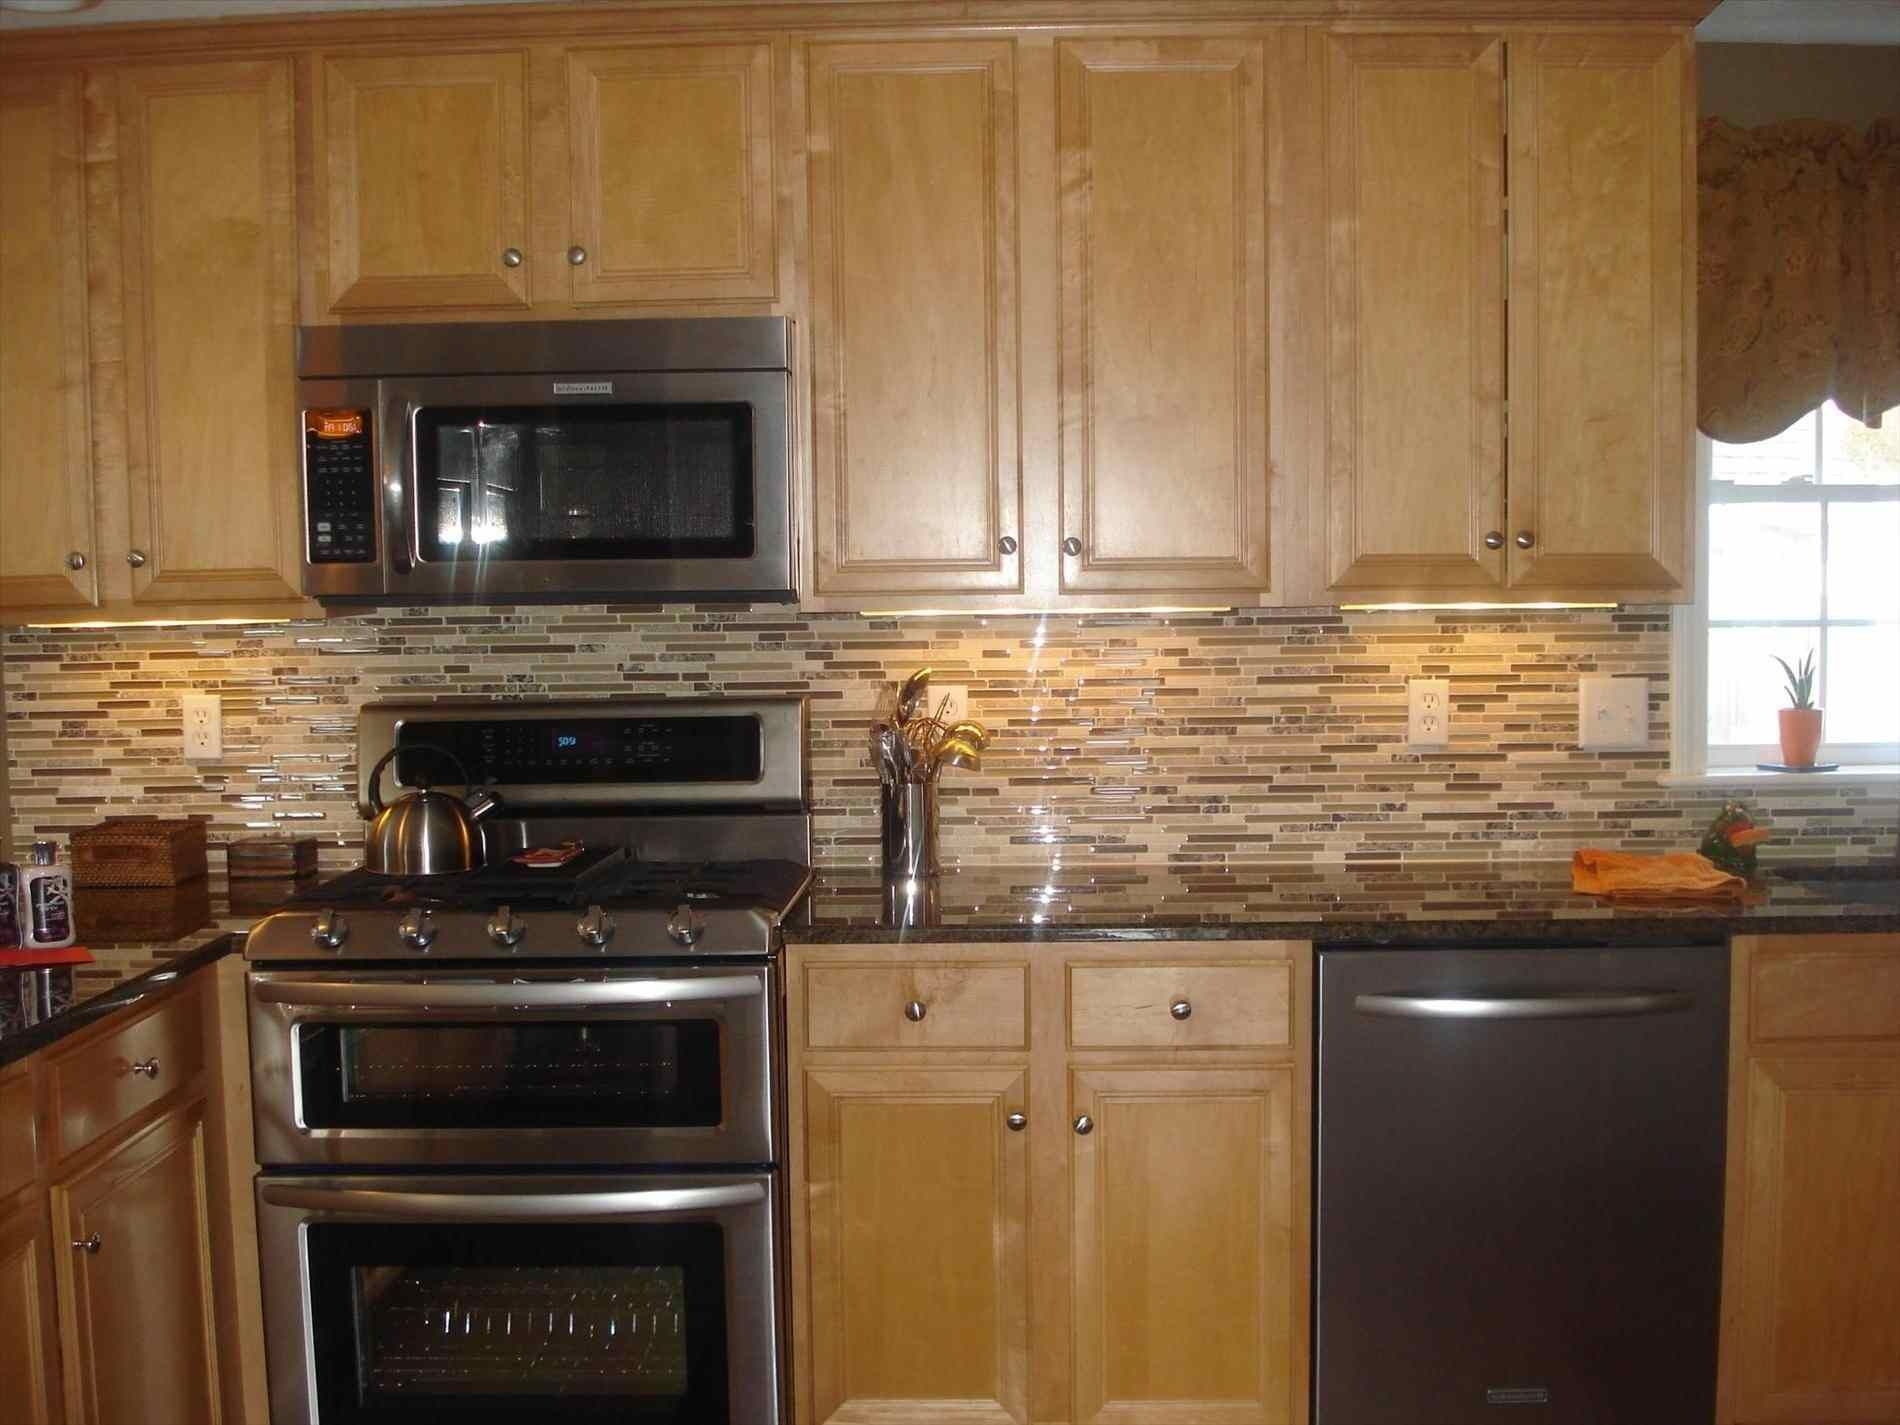 light oak cabinets dark countertops | DeducTour.com ... on Backsplash Maple Cabinets With Black Countertops  id=97461